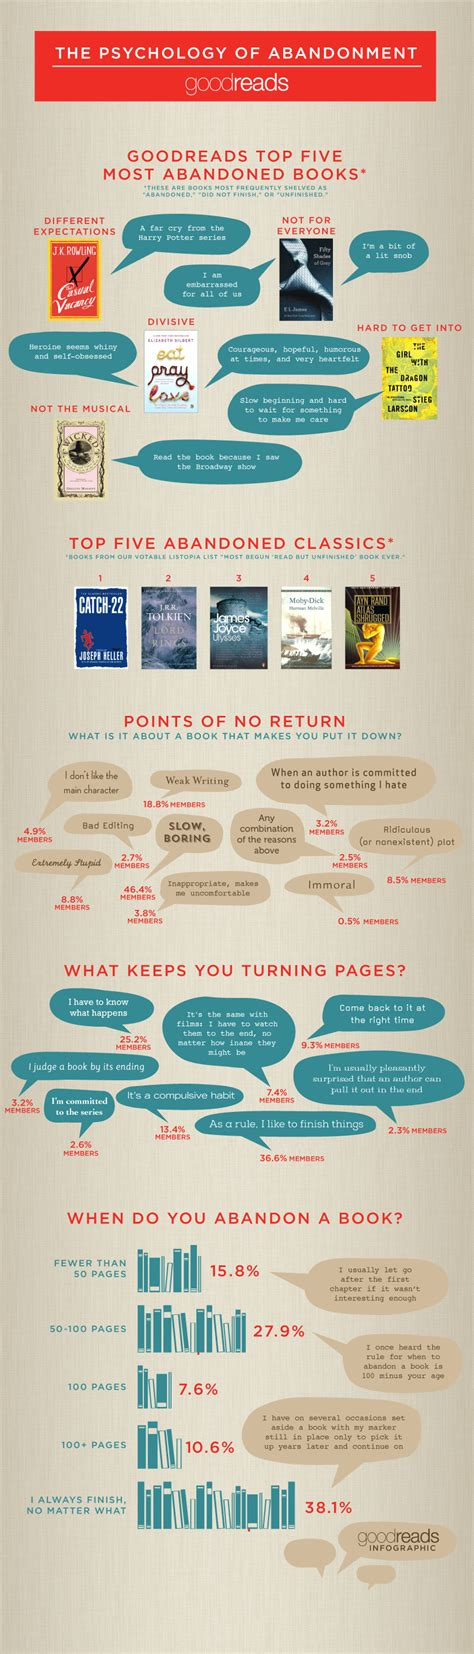 the abanonded books the psychology of abandonment infographic by goodreads